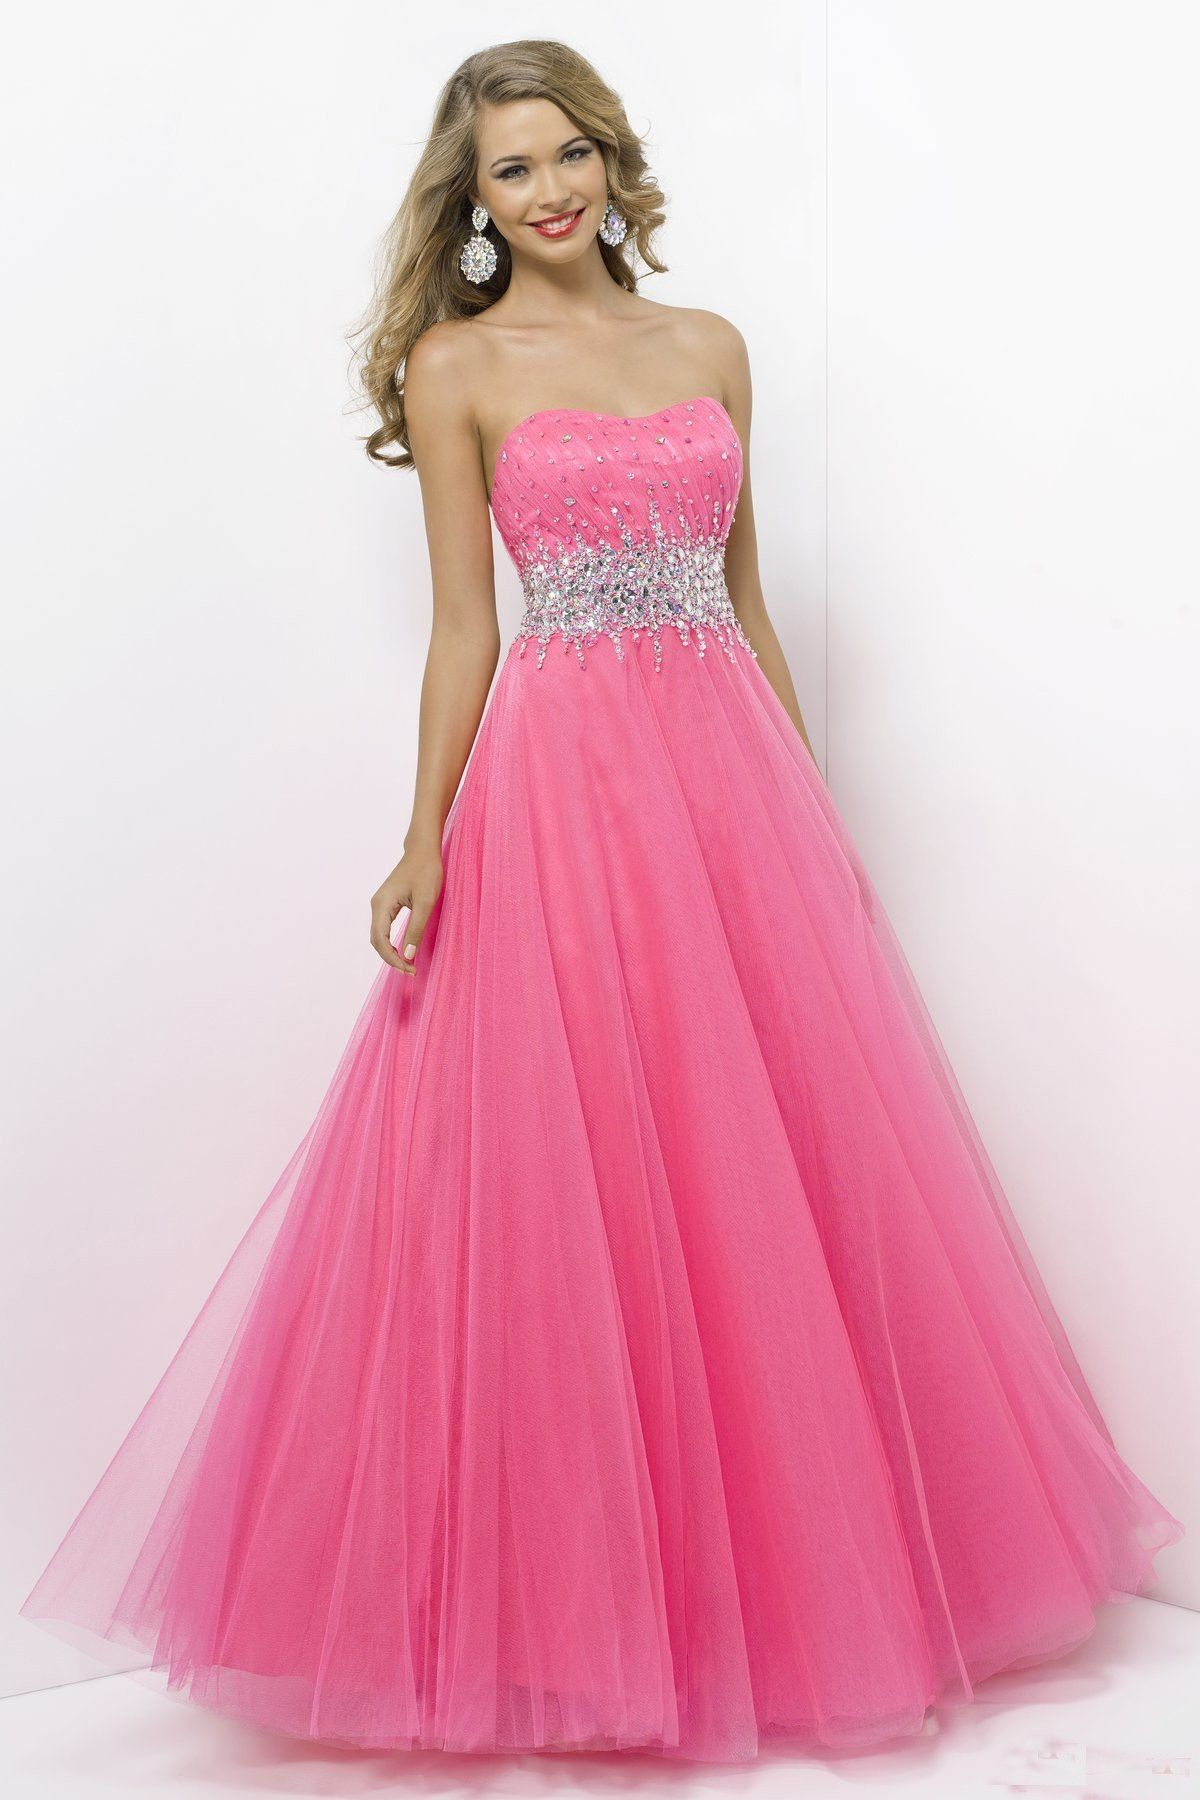 TBdress Prom Dresses Archives | Ilusion | Pinterest | Dulces 15 ...